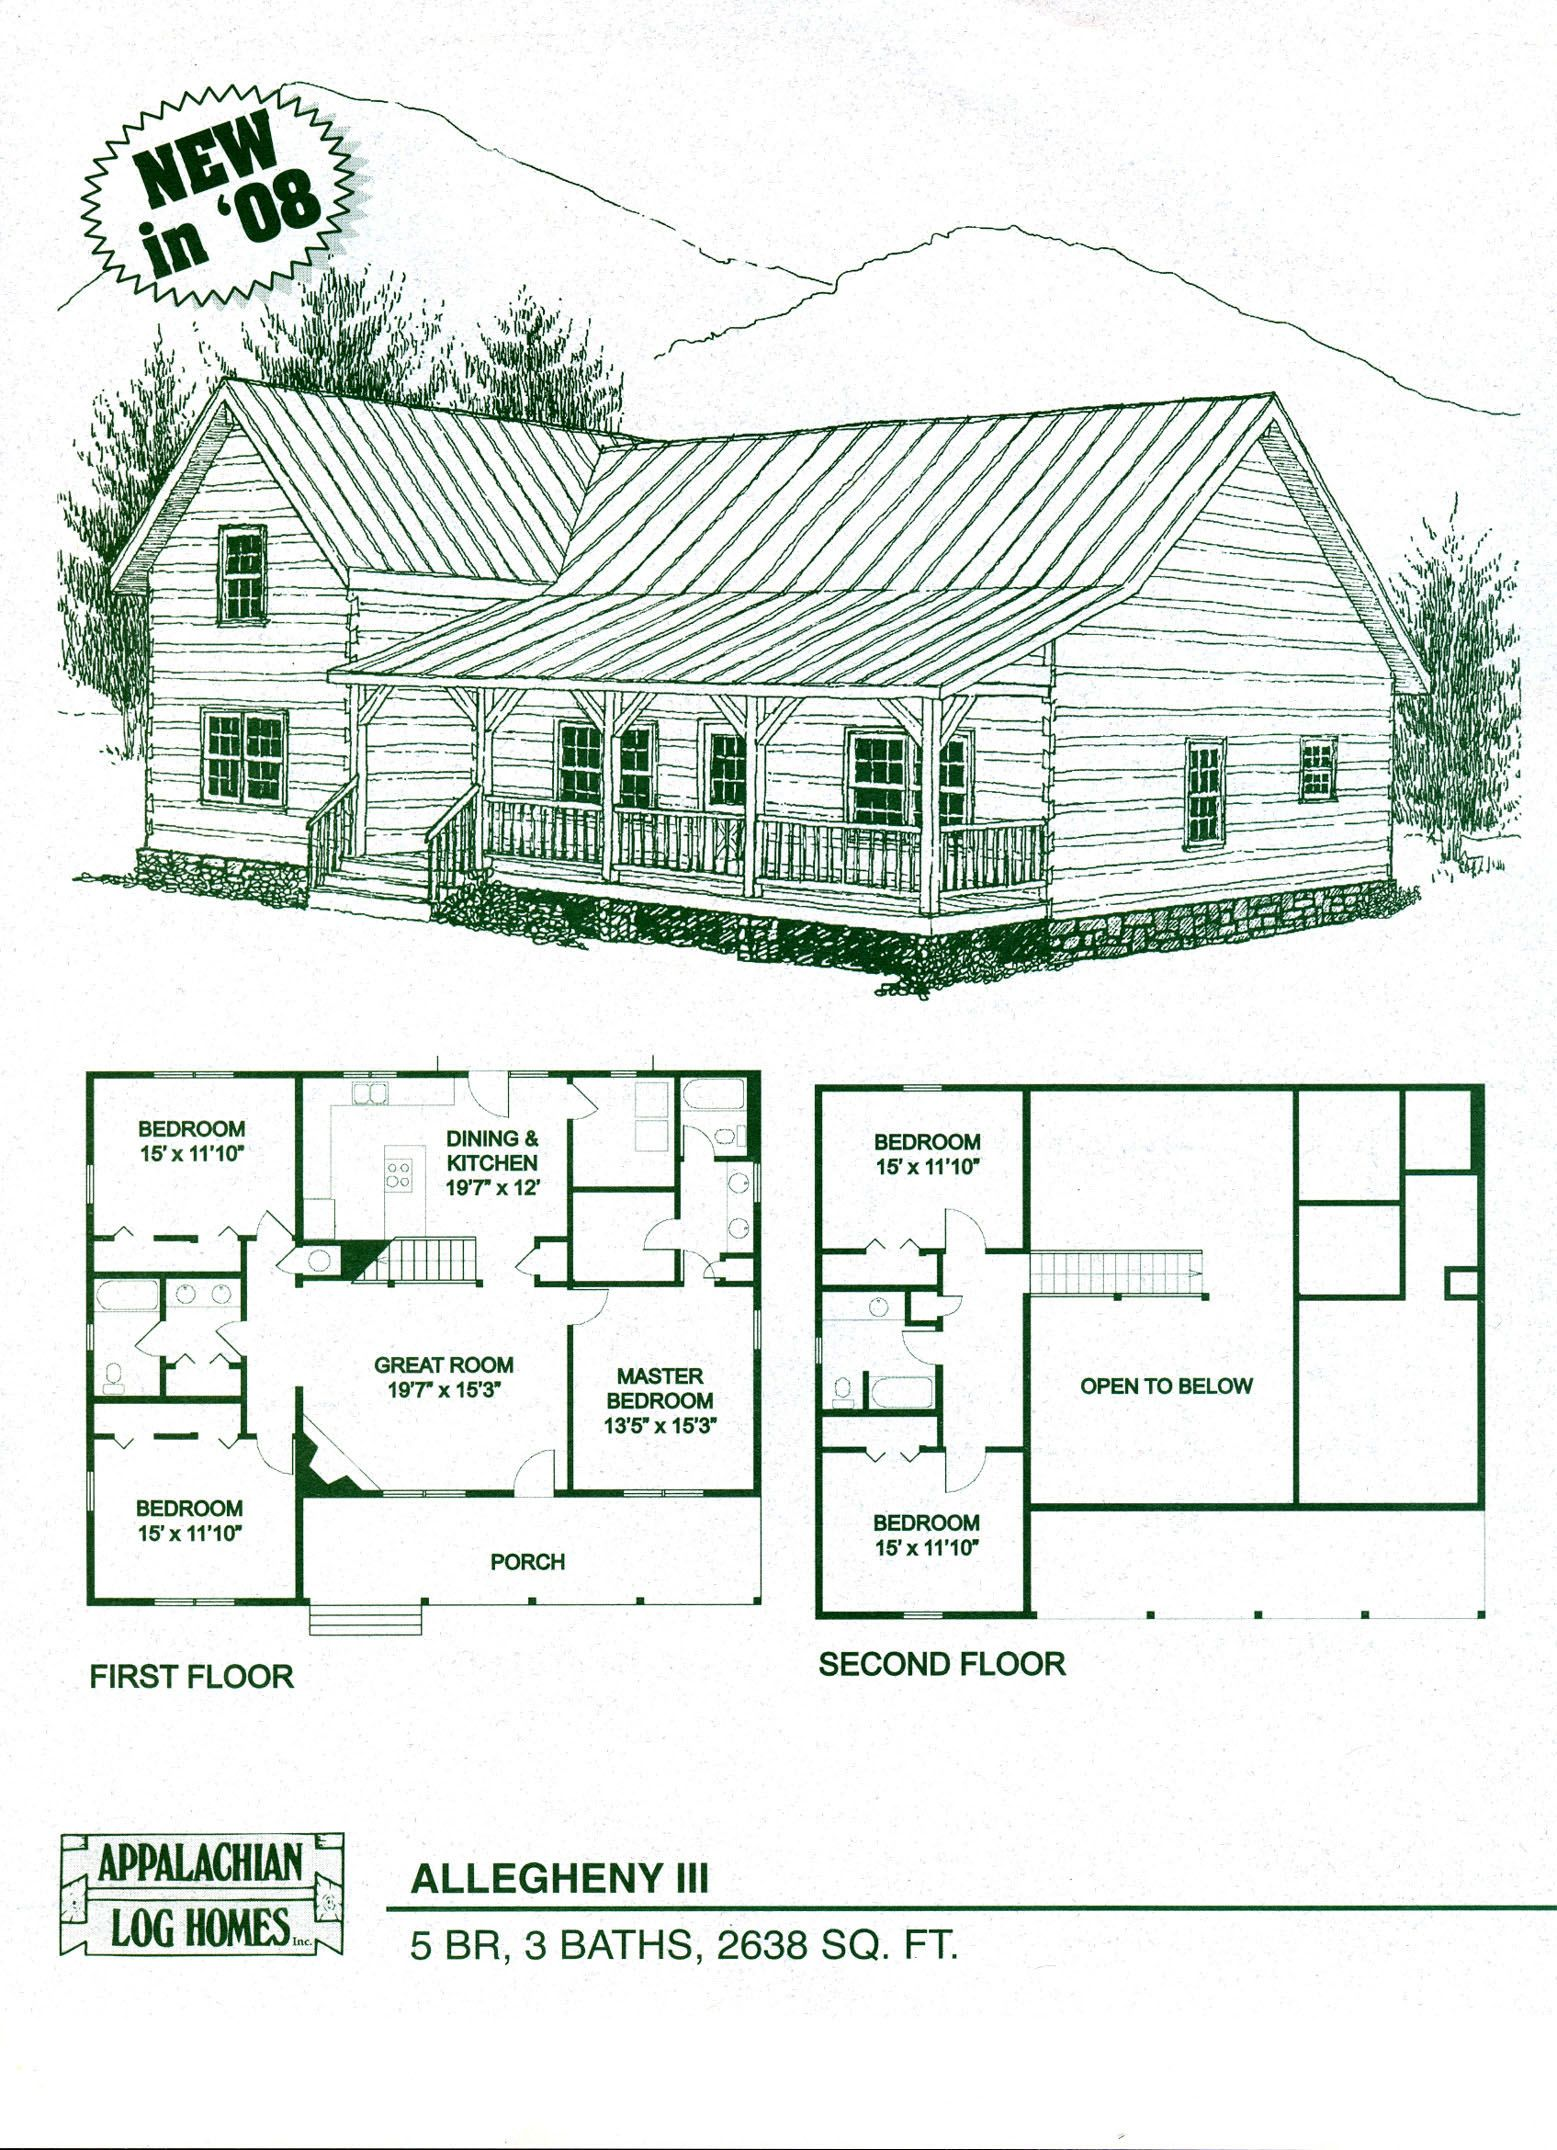 Log home floor plans log cabin kits appalachian log for House kit plans